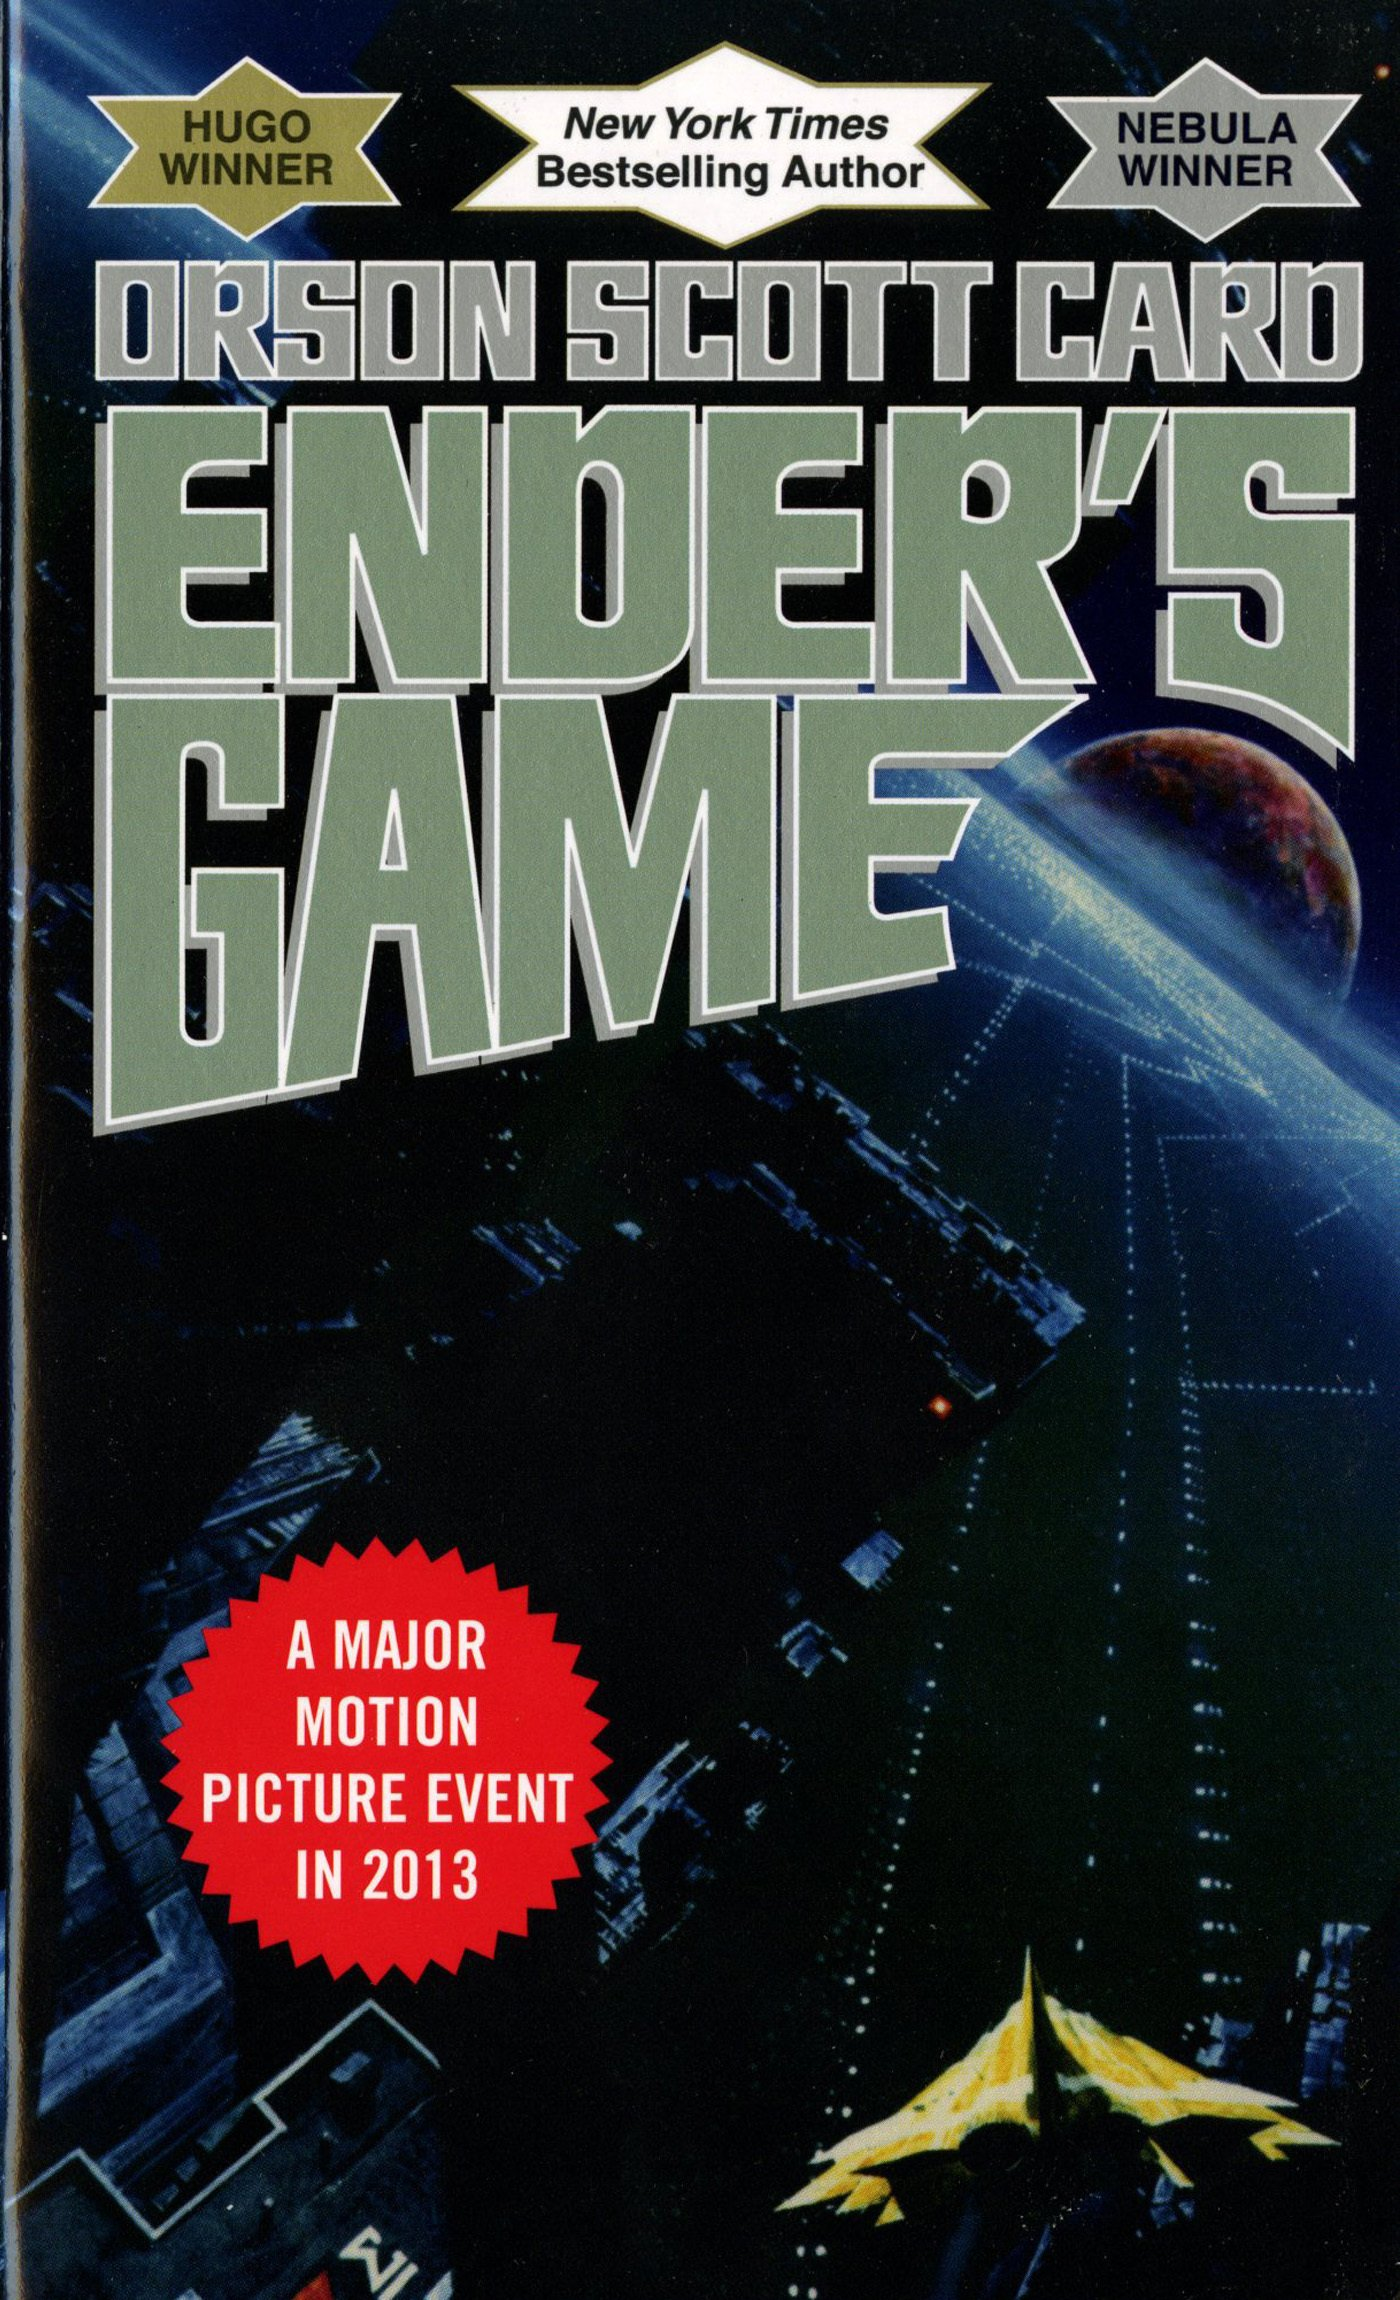 Cover of Ender's Game book by Orson Scott Card